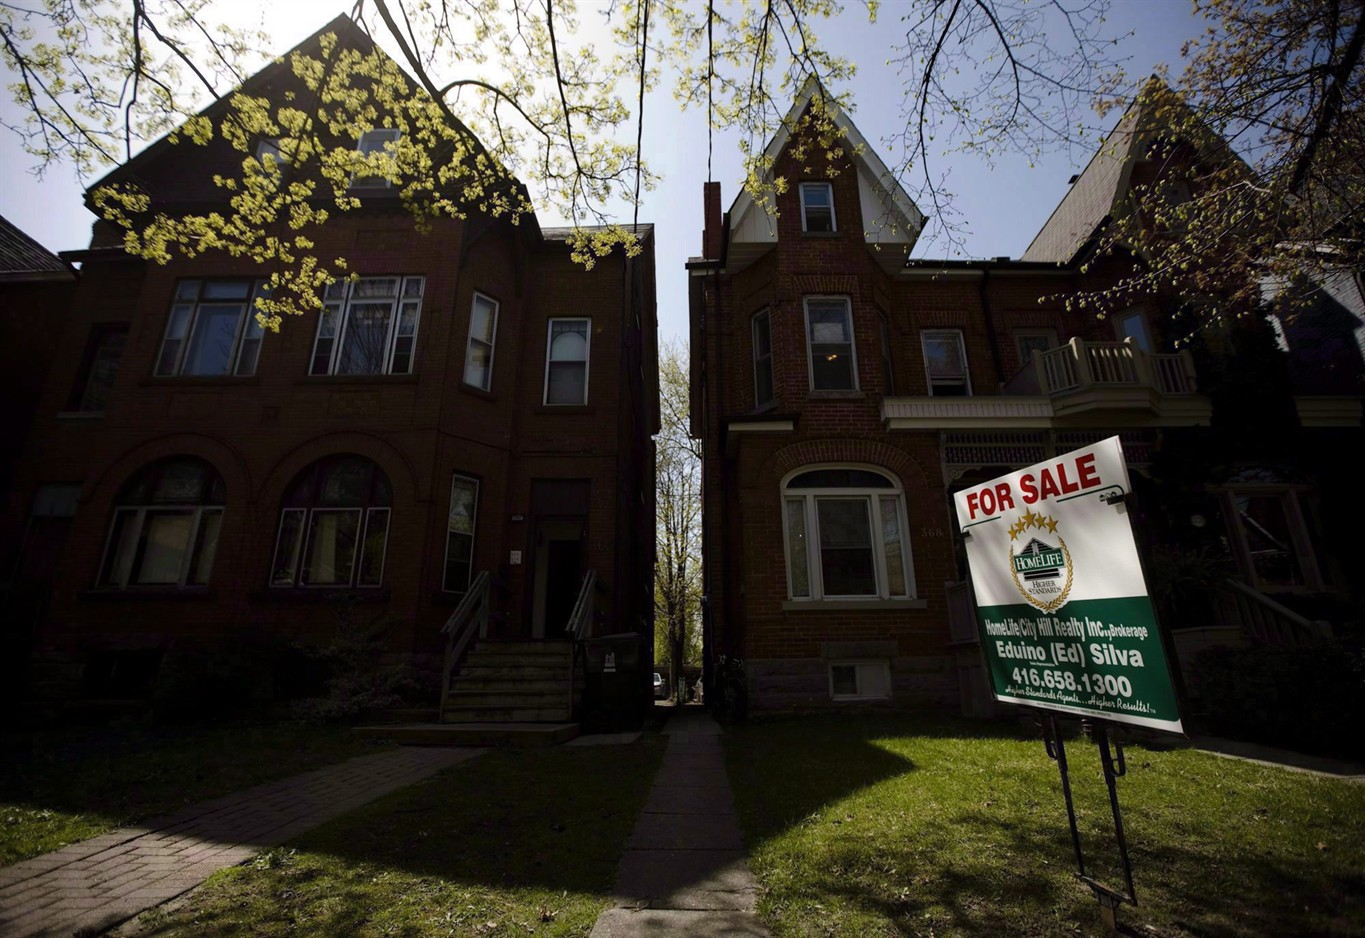 Toronto home sales plunge 40.4% in July as slowdown intensifies